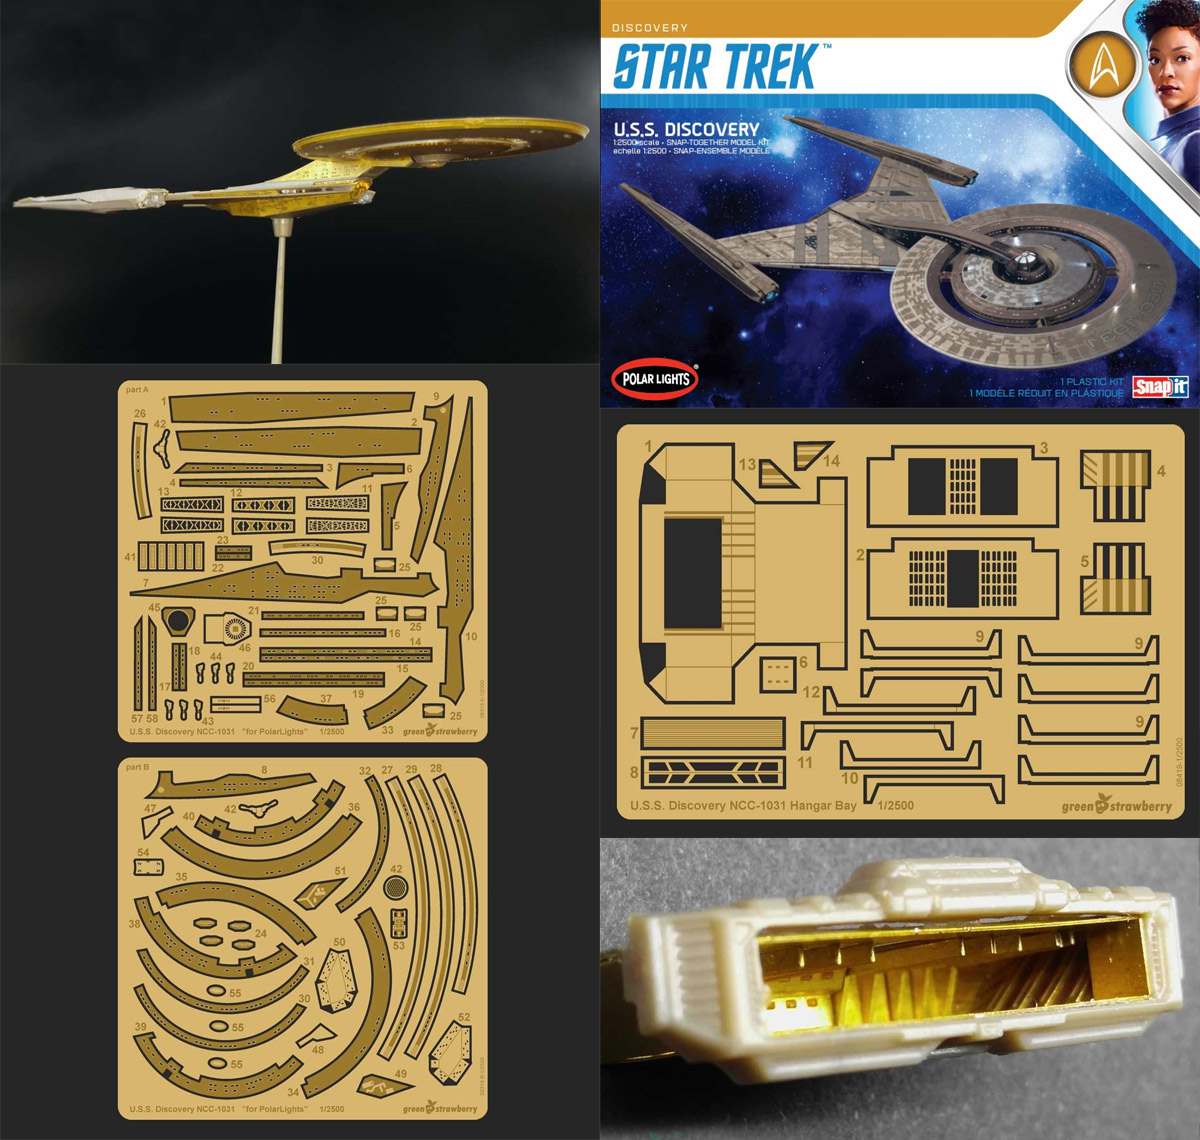 "Star Trek Discovery NCC-1031 1/2500 Scale Photoetch Detail and Hangar Set ""Fruit Pack"" by Green Strawberry"